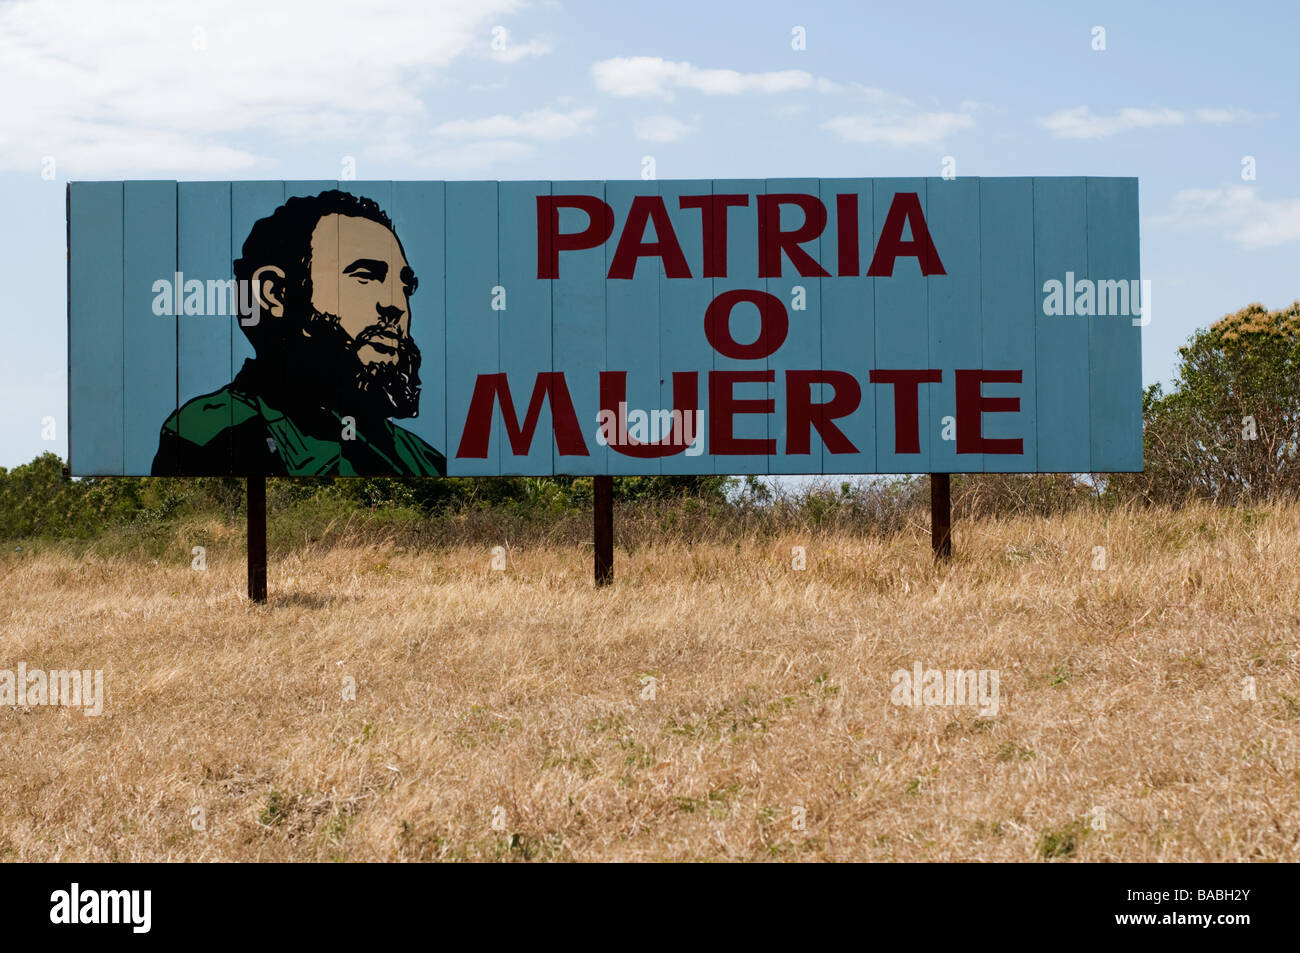 Rural billboard in Cuba with a revolutionary slogan and drawing of Fidel Castro - Stock Image